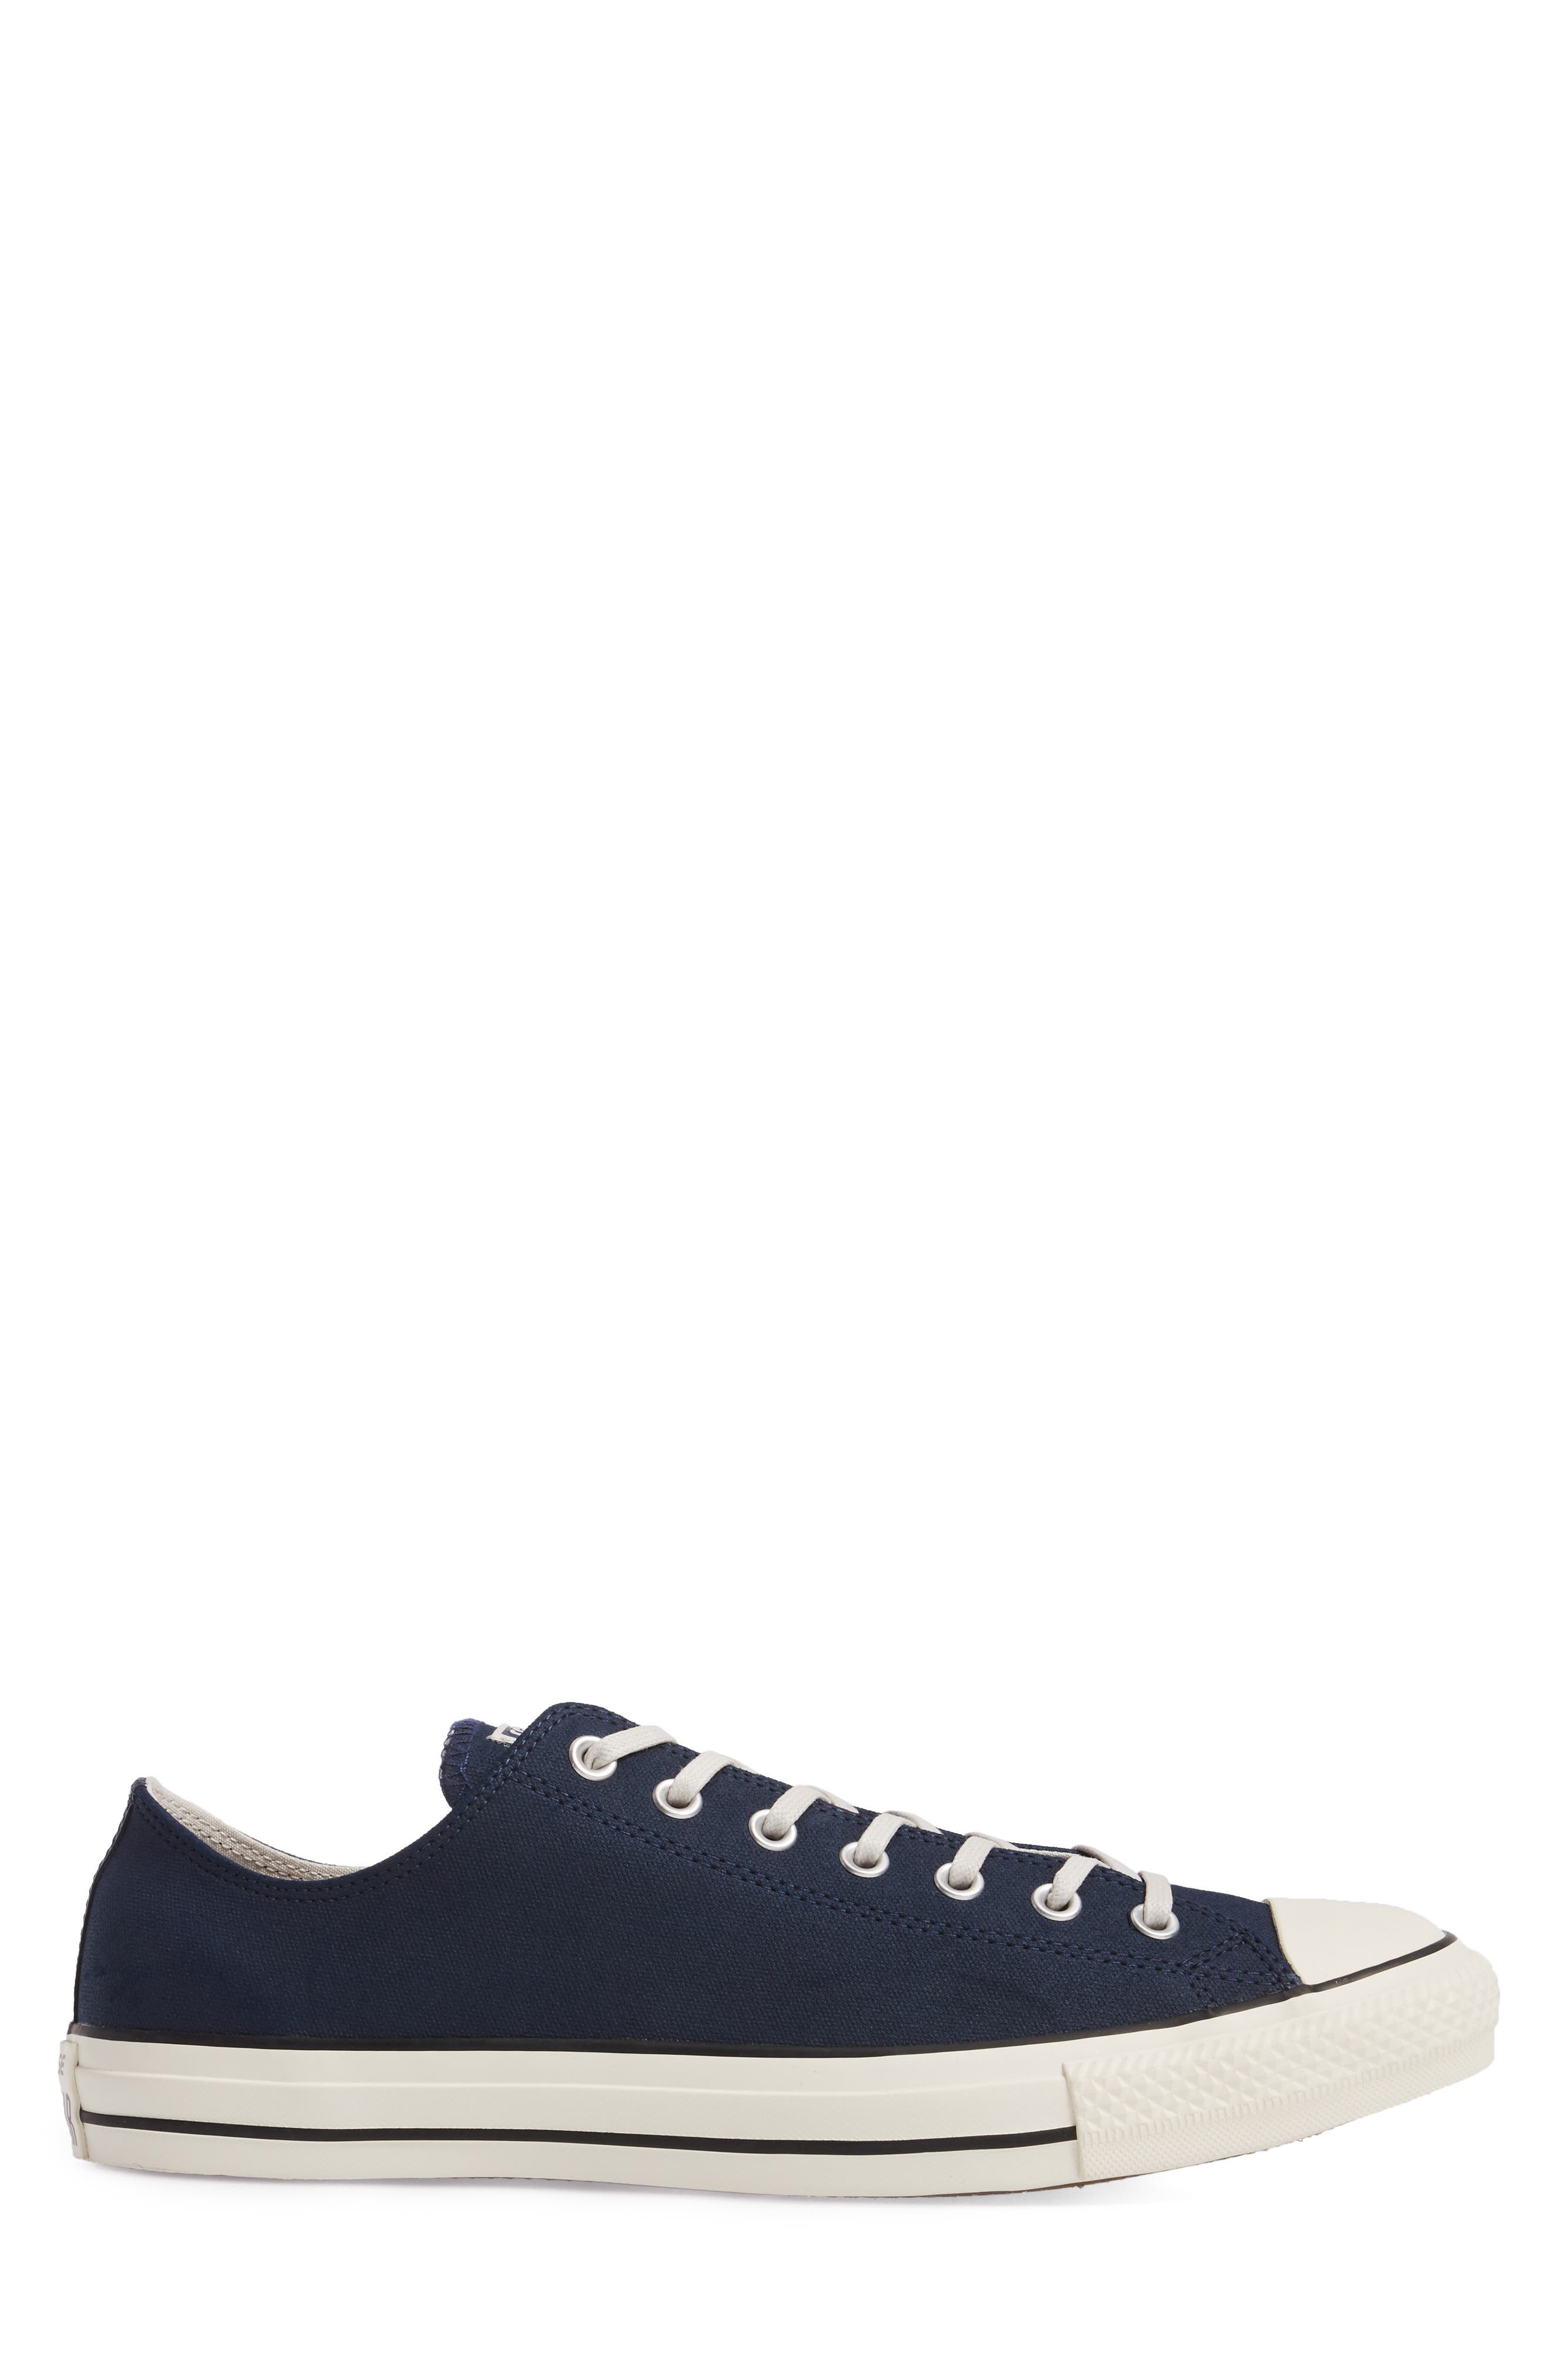 Chuck Taylor<sup>®</sup> All Star<sup>®</sup> Low Top Sneaker,                             Alternate thumbnail 3, color,                             471